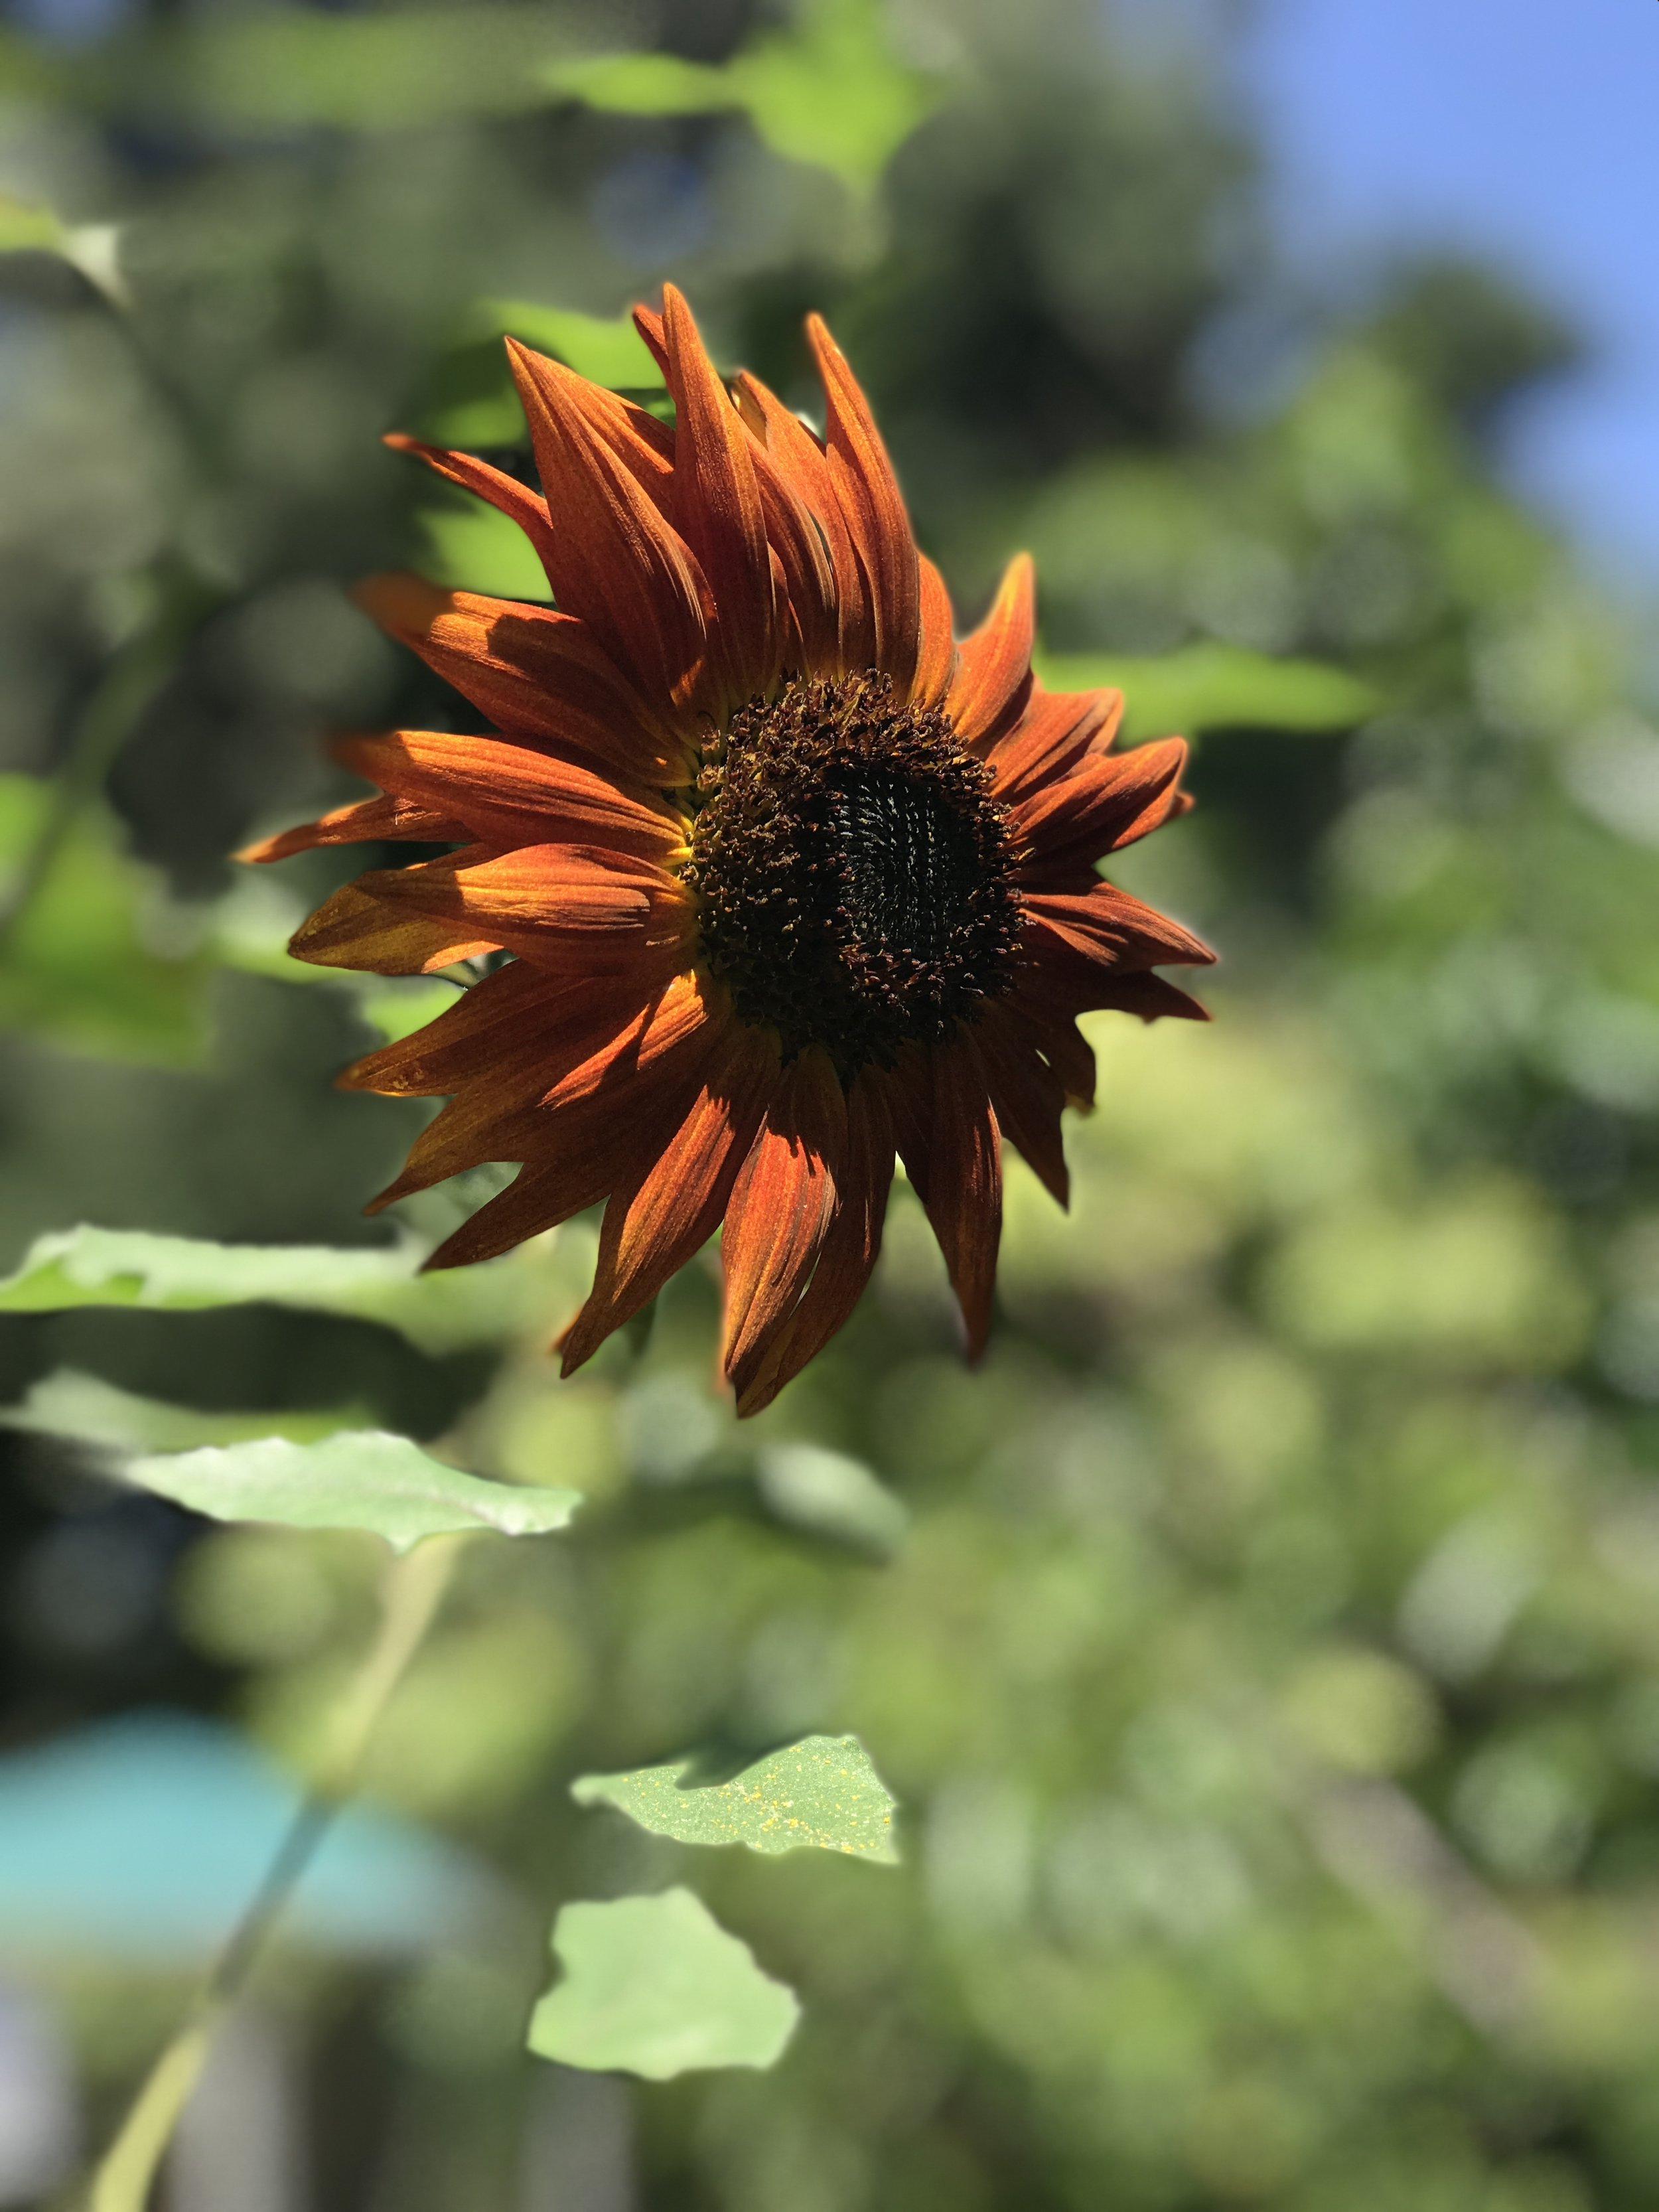 Taken by me in the Unitarian Universalist Church of Studio City Community Garden